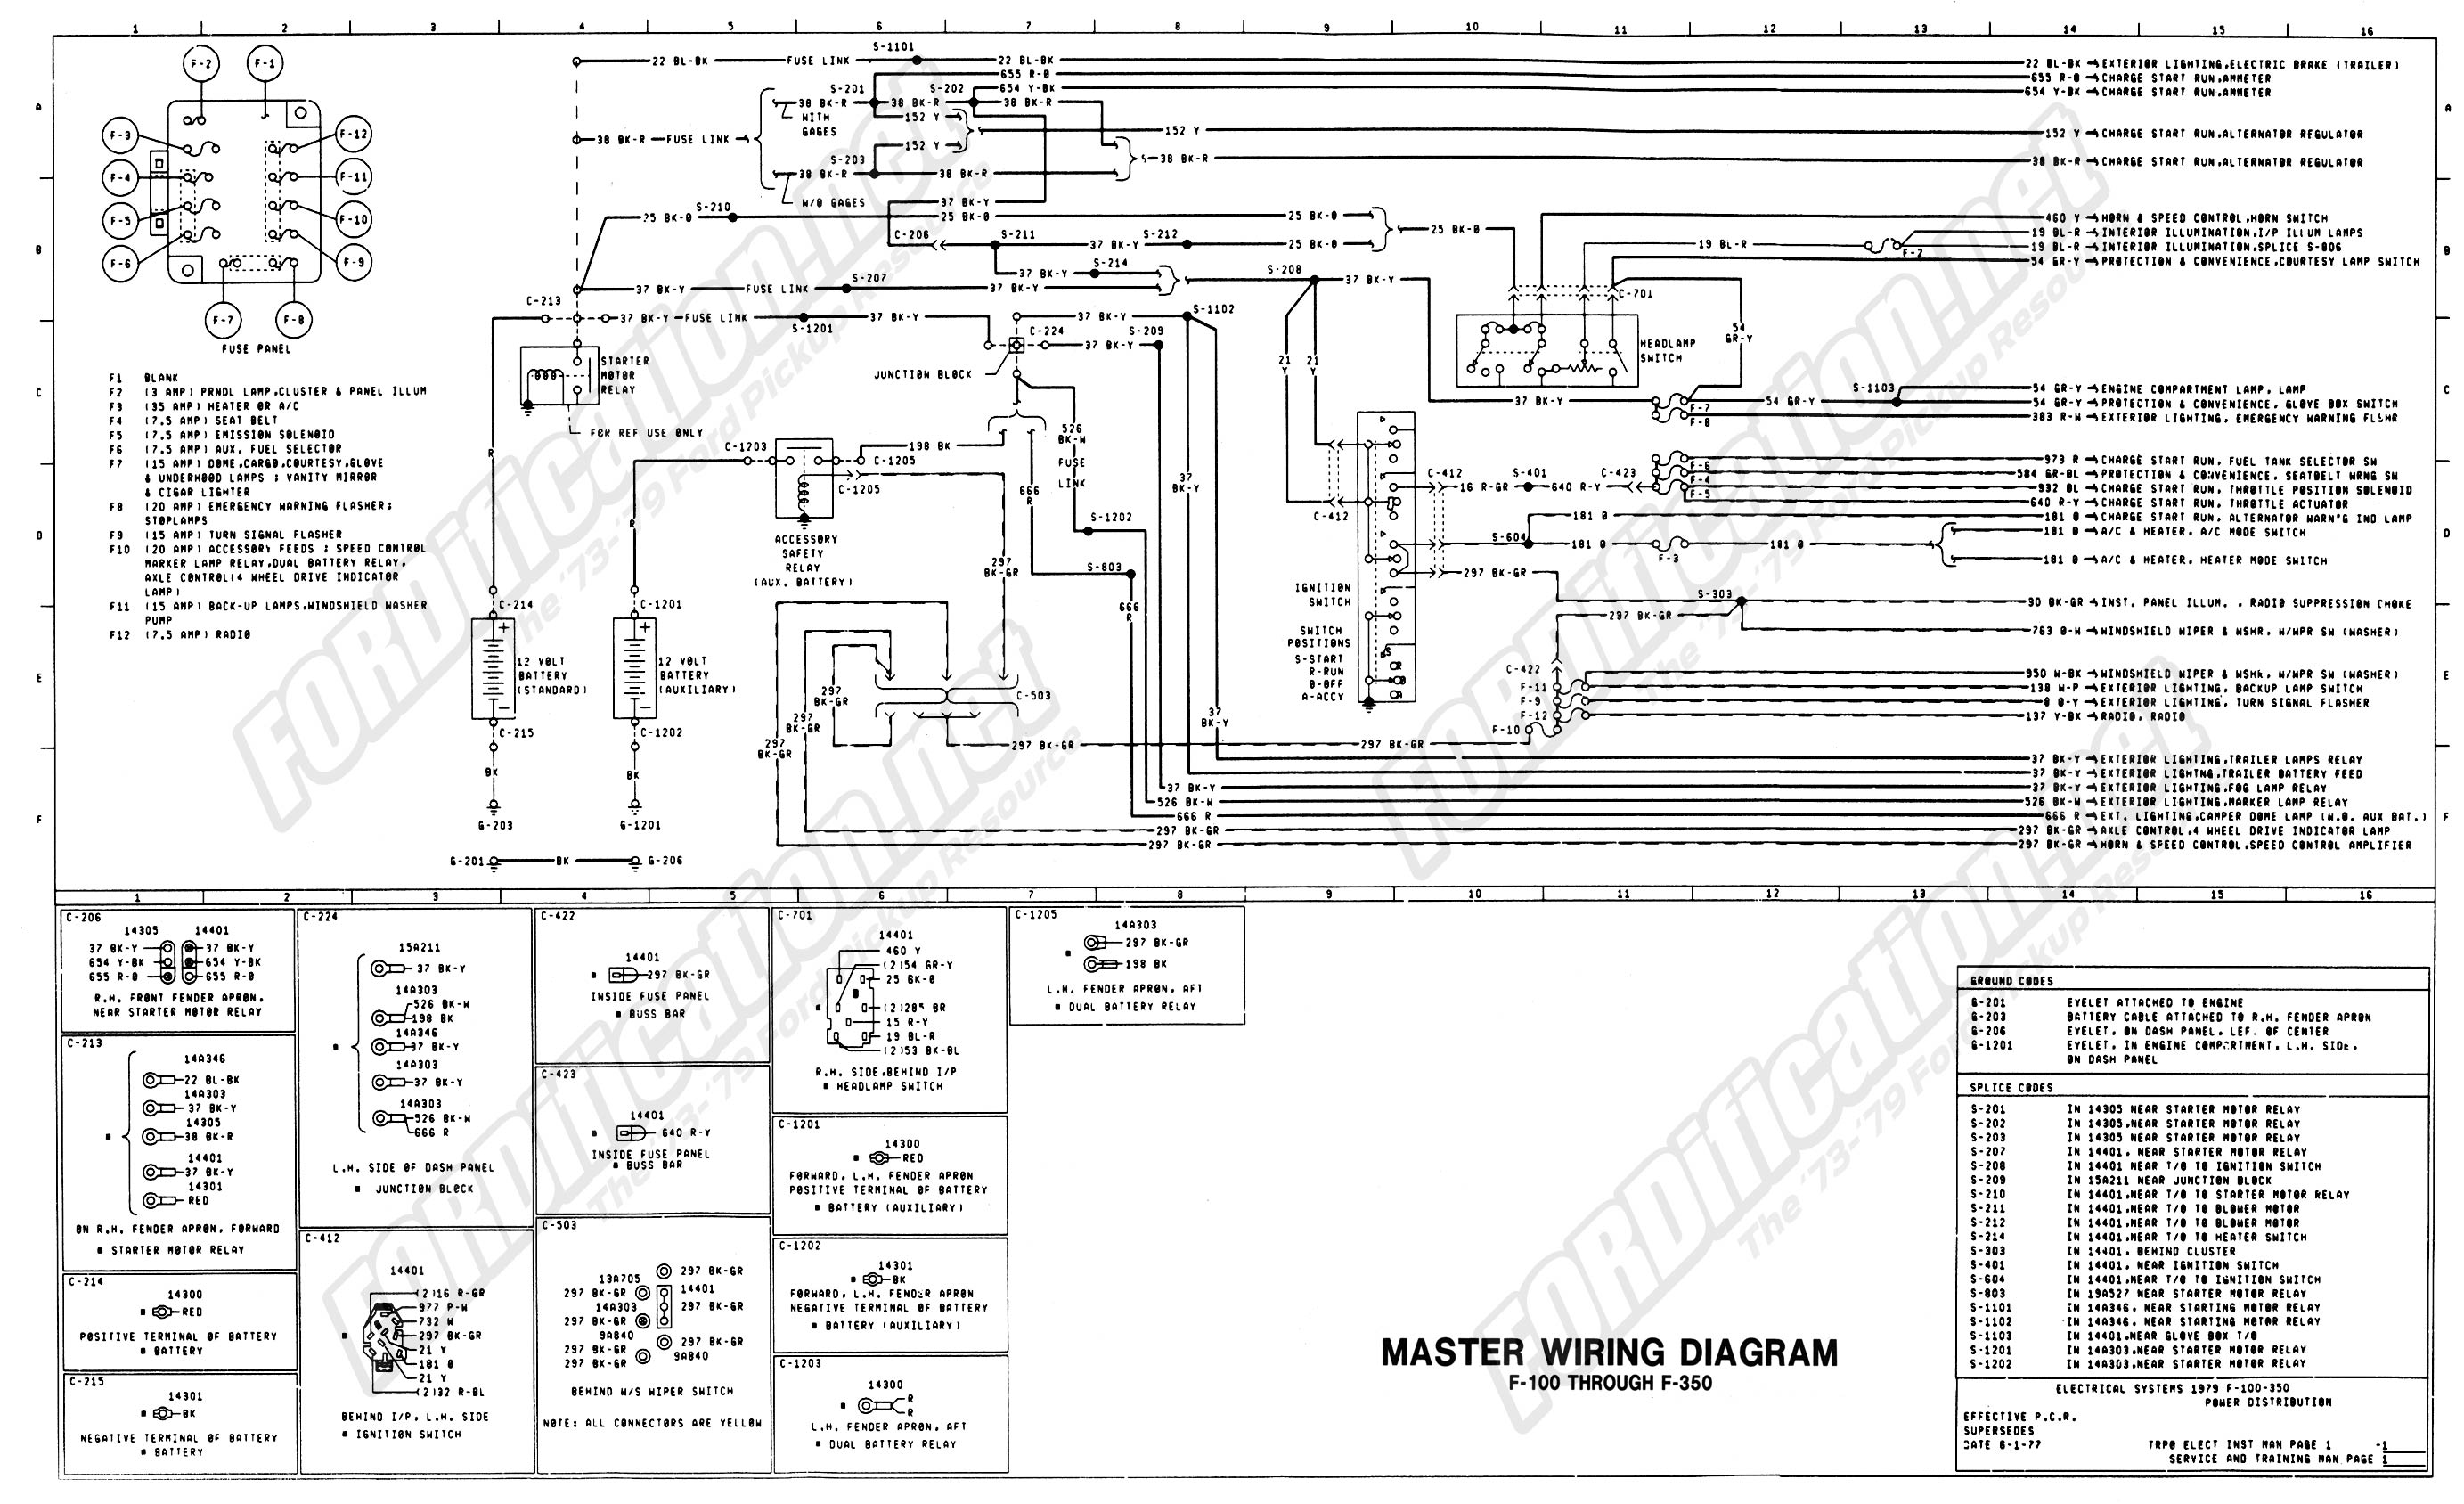 wiring_79master_1of9 1973 1979 ford truck wiring diagrams & schematics fordification net ford electronic ignition wiring diagram at virtualis.co